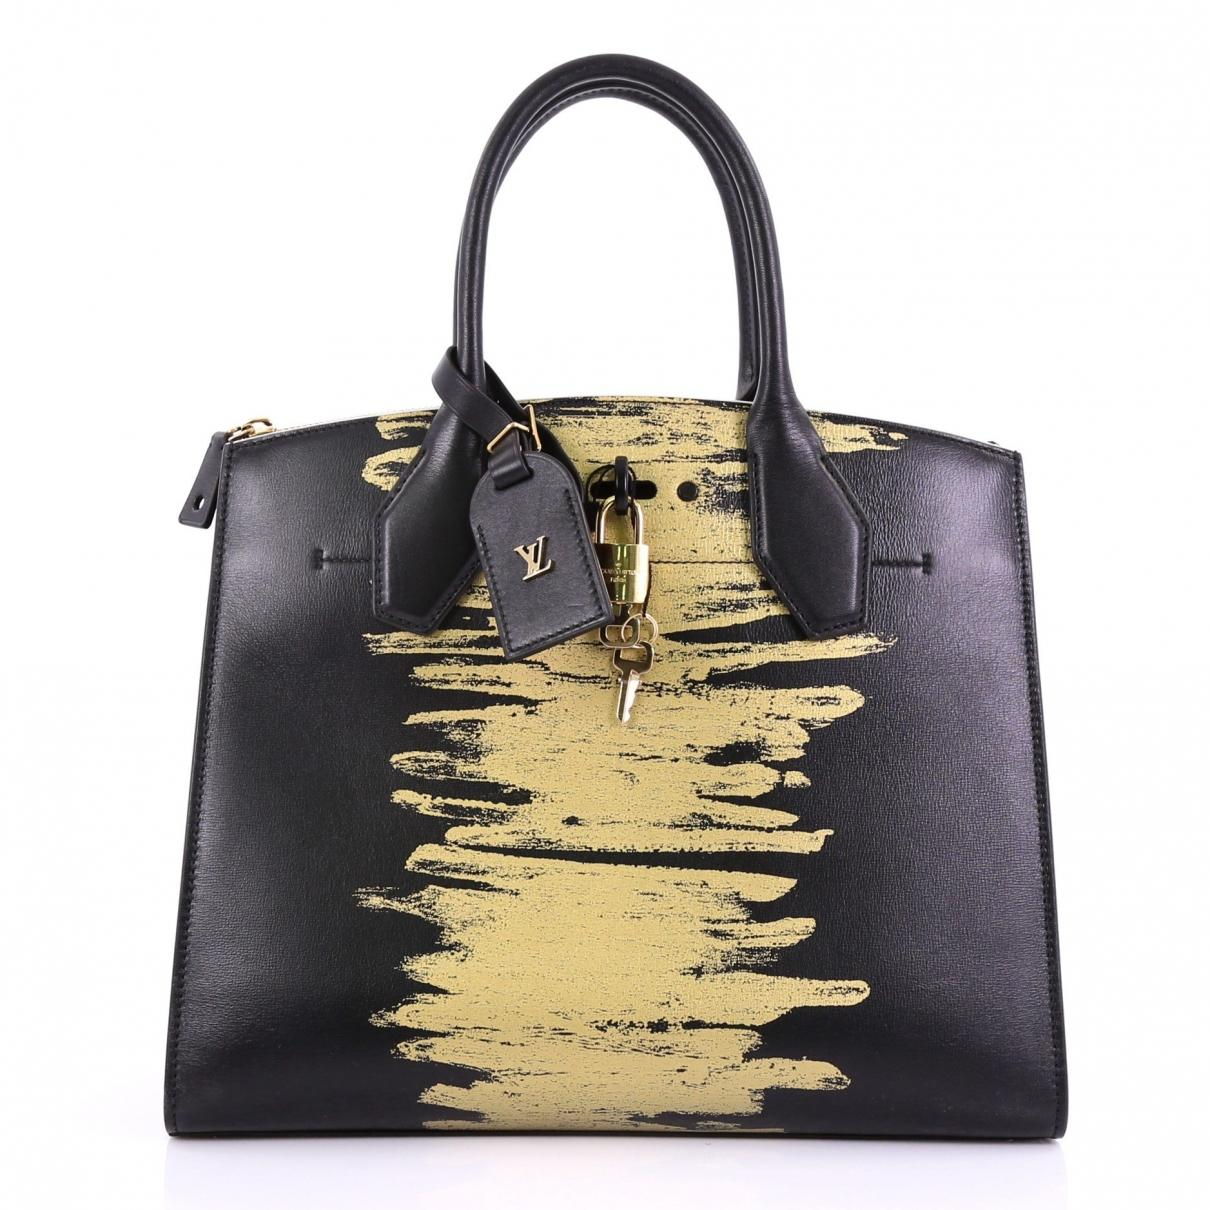 d92d860b9579 Louis Vuitton. Women's City Steamer Black Leather Handbag. £2,342 From Vestiaire  Collective